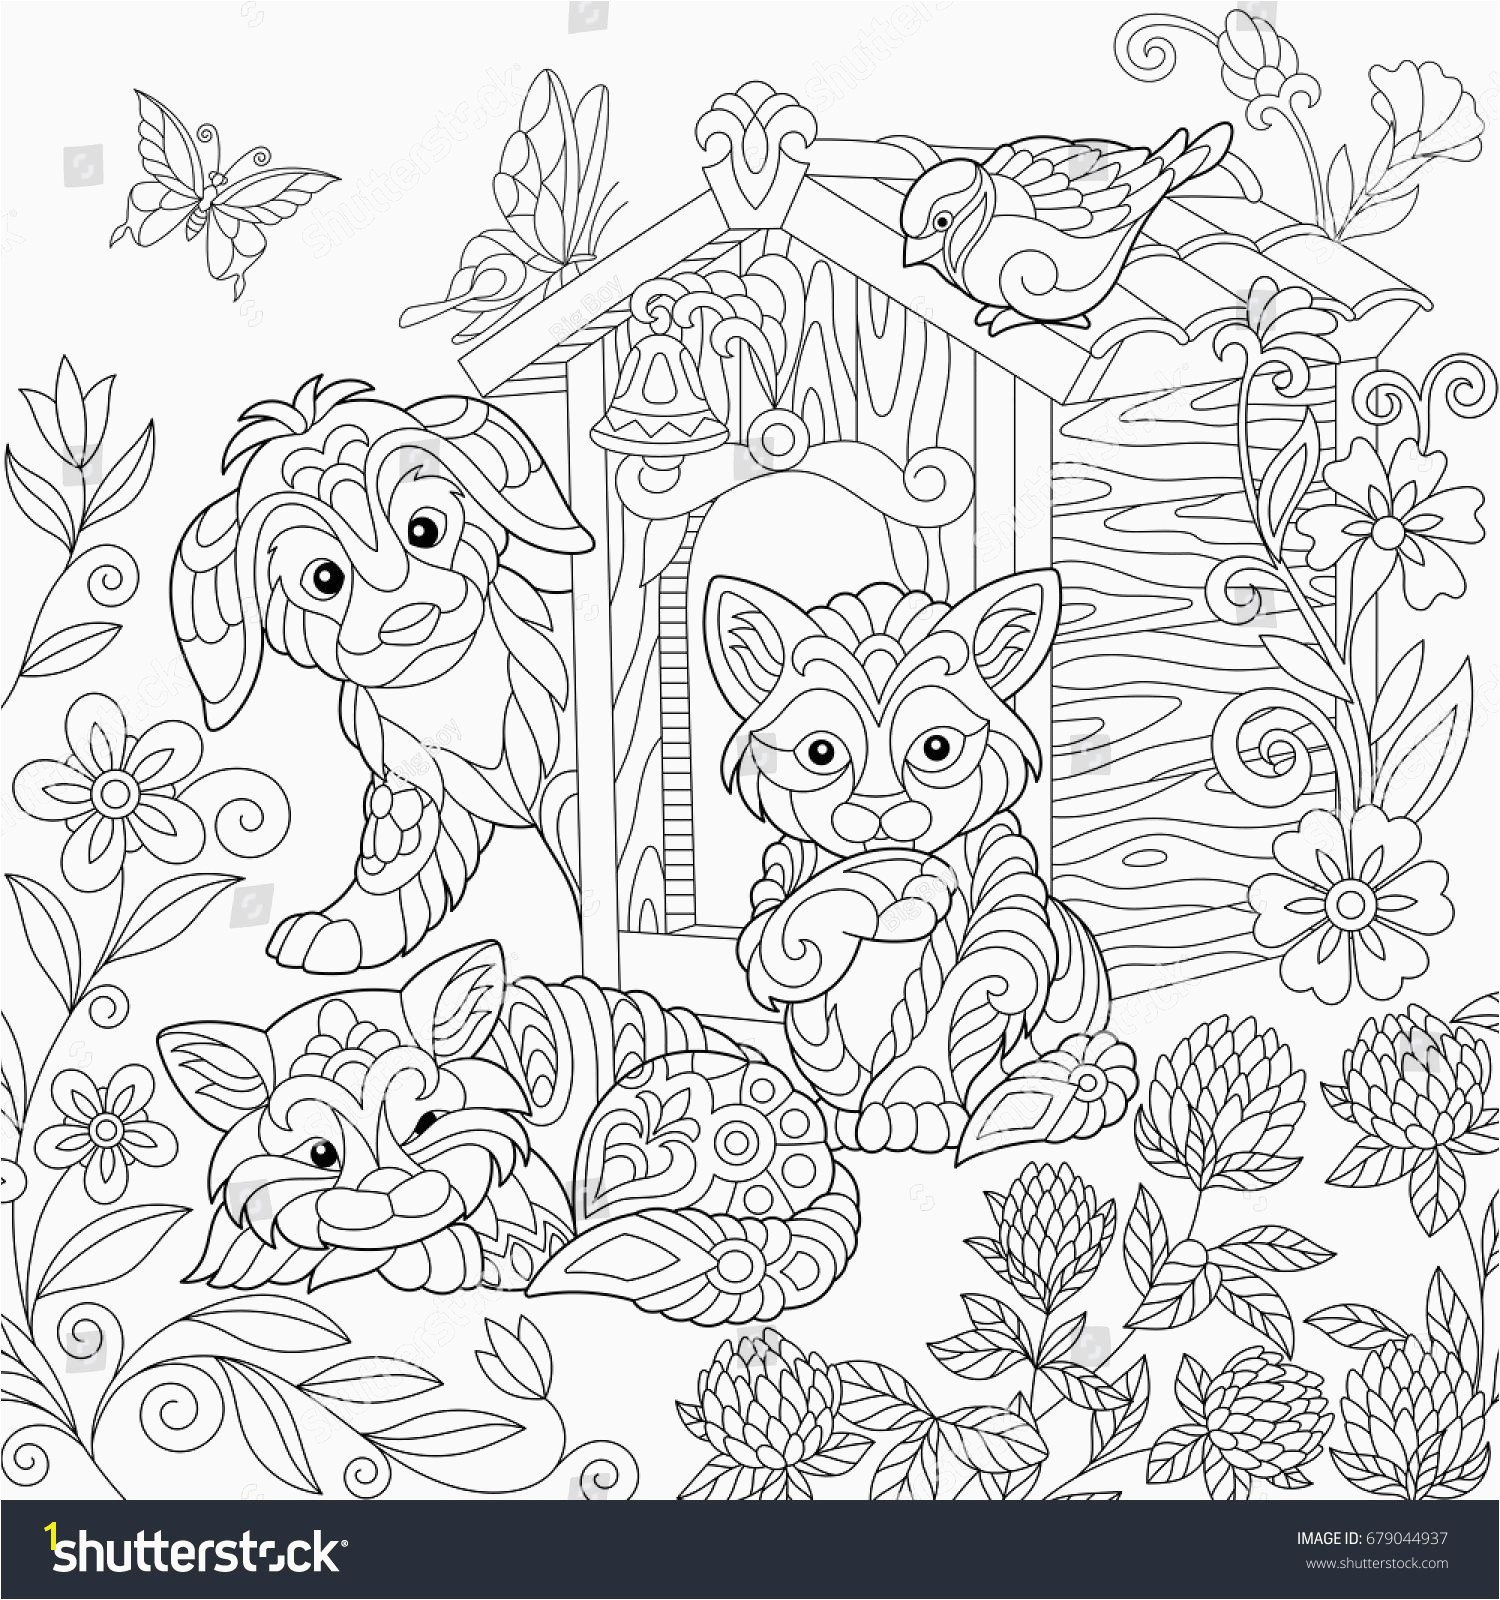 Full Page Printable Coloring Pages Elegant Best Od Dog Coloring